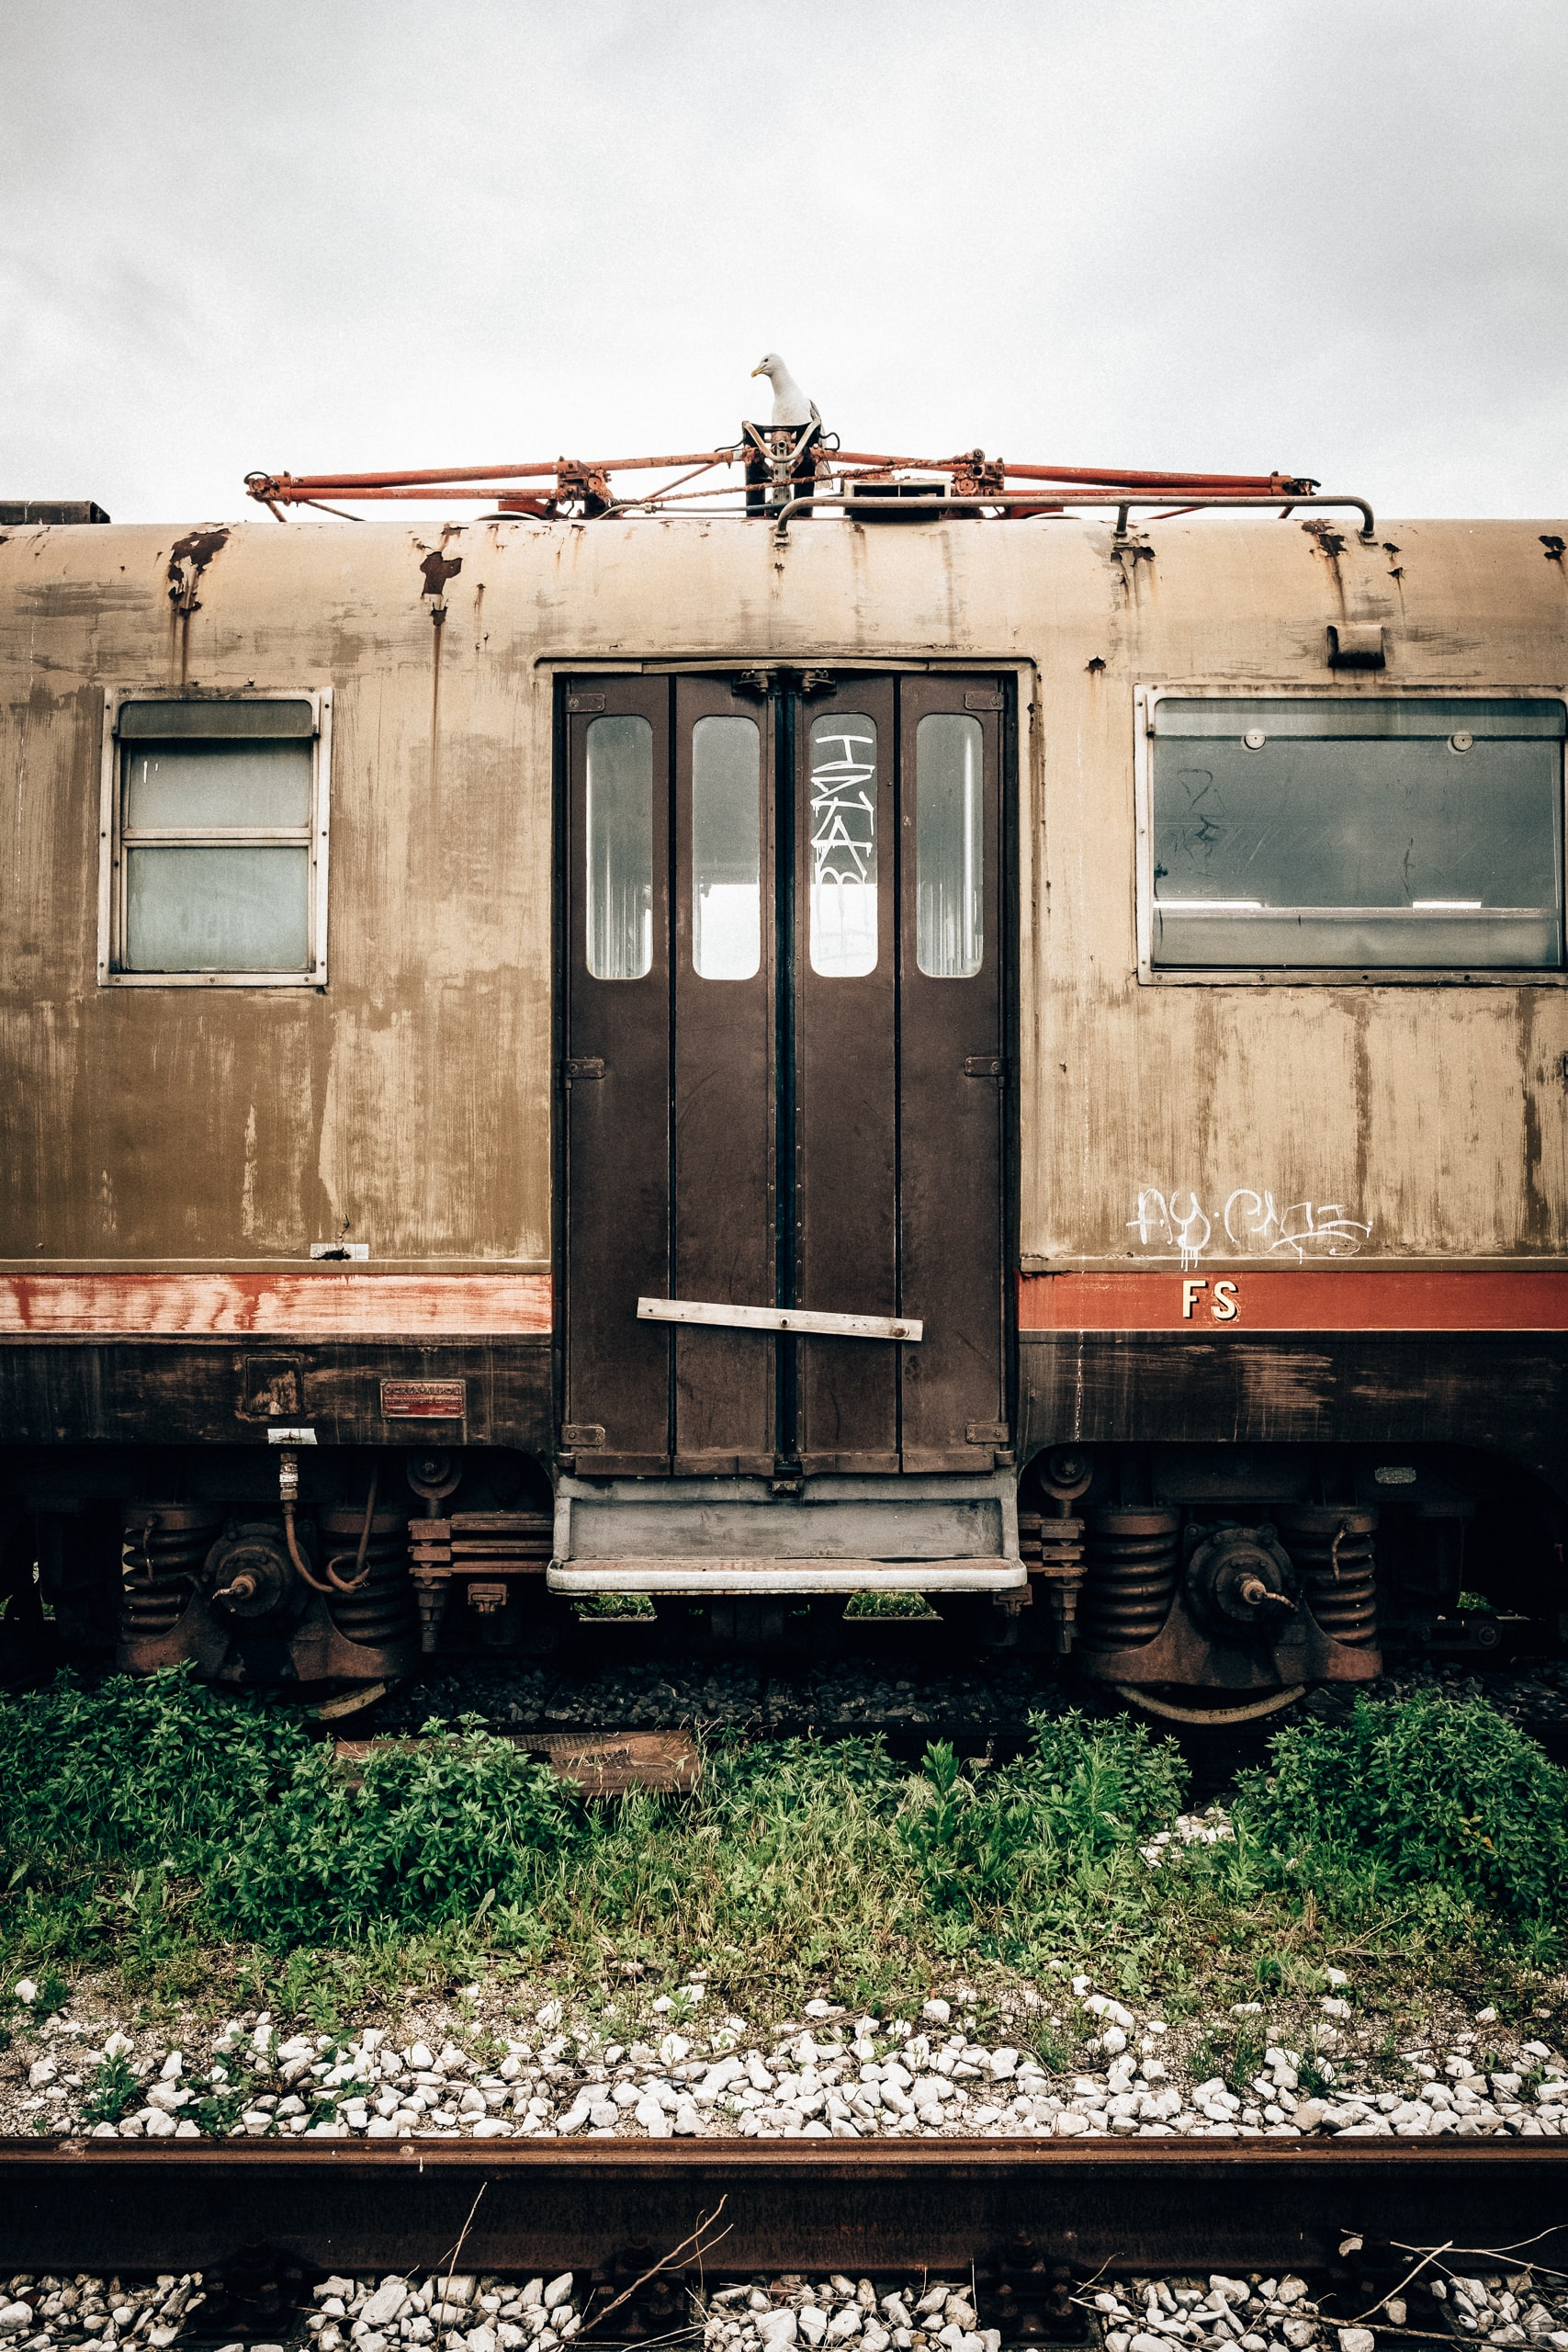 Abandoned train car on old tracks surrounded by weeds and rocks